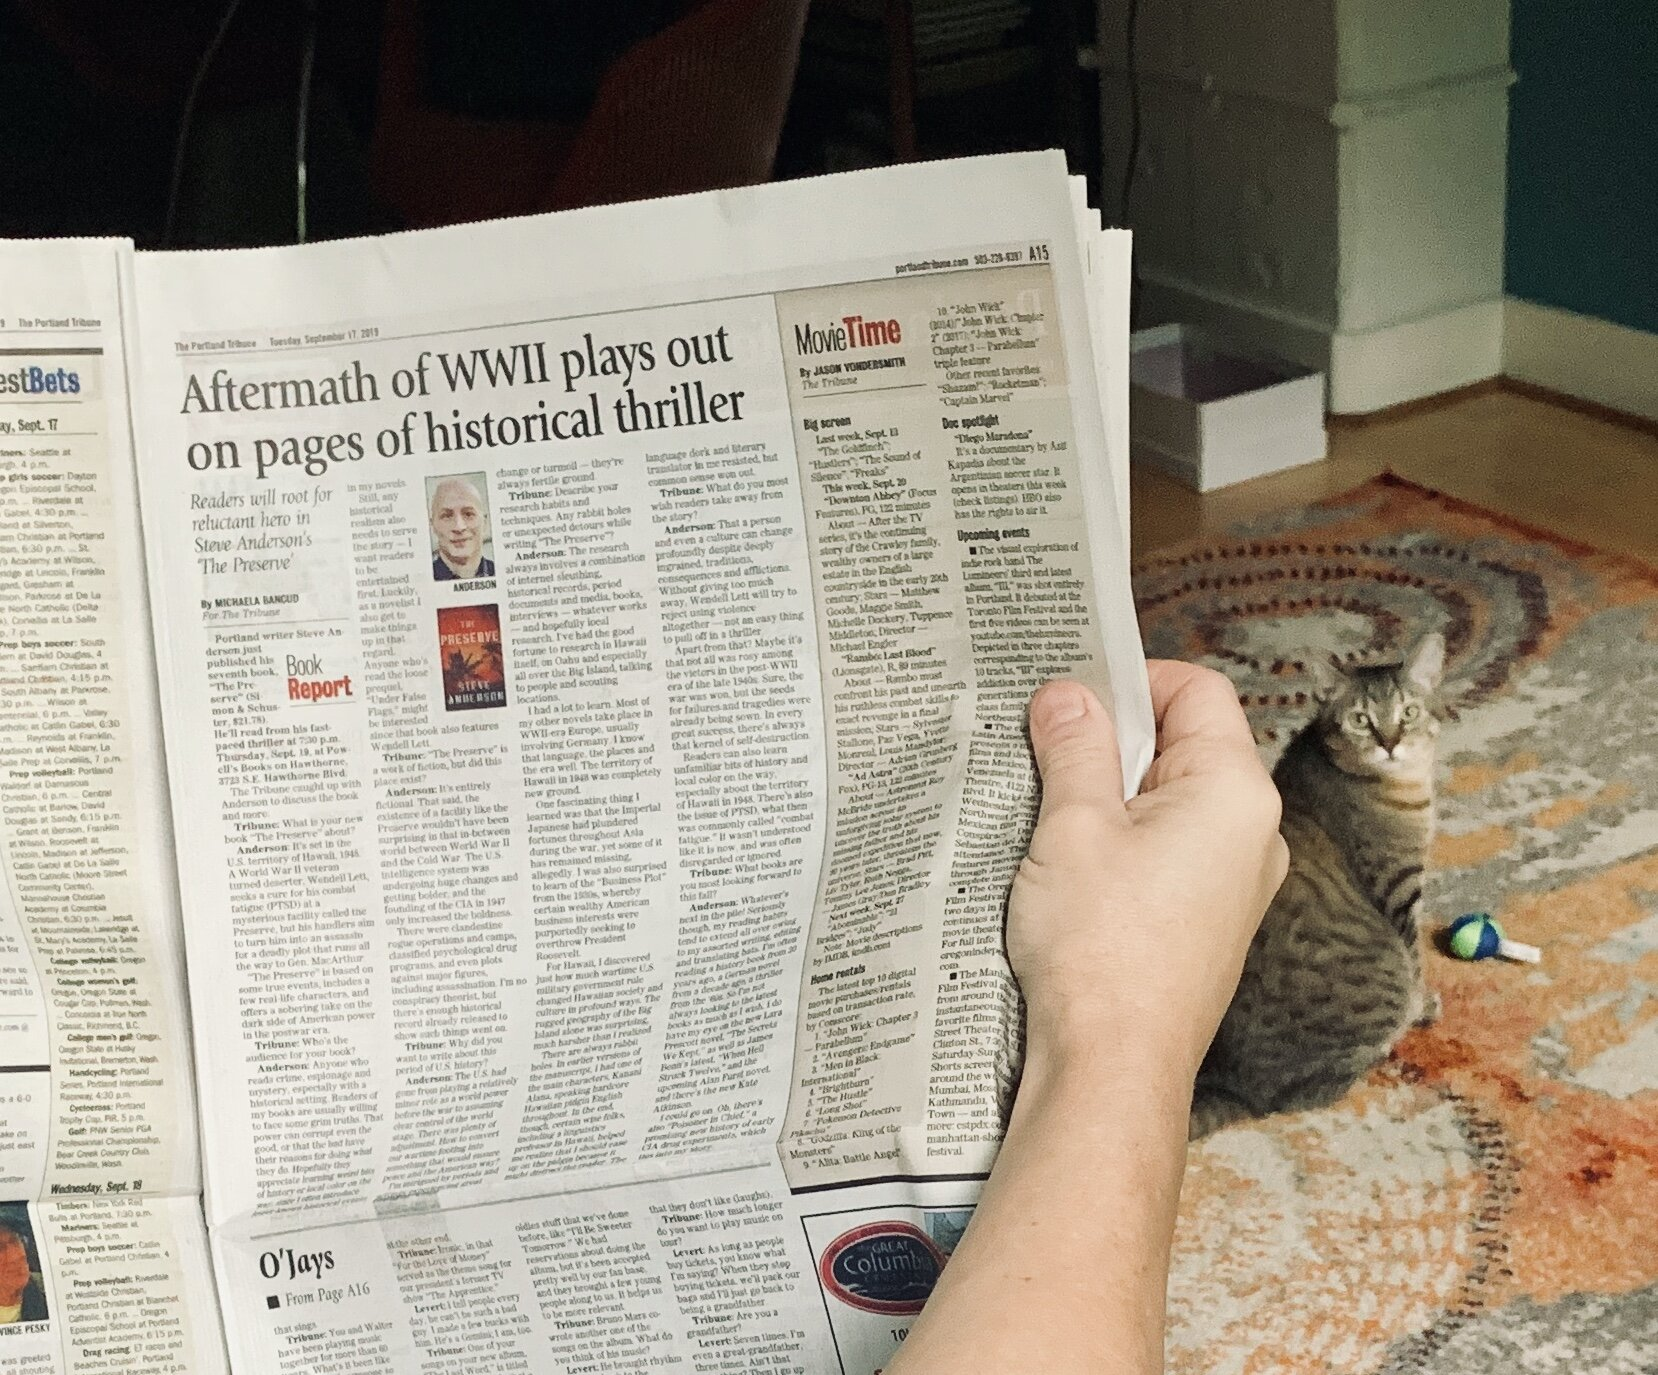 Our cat Trina approves of print media